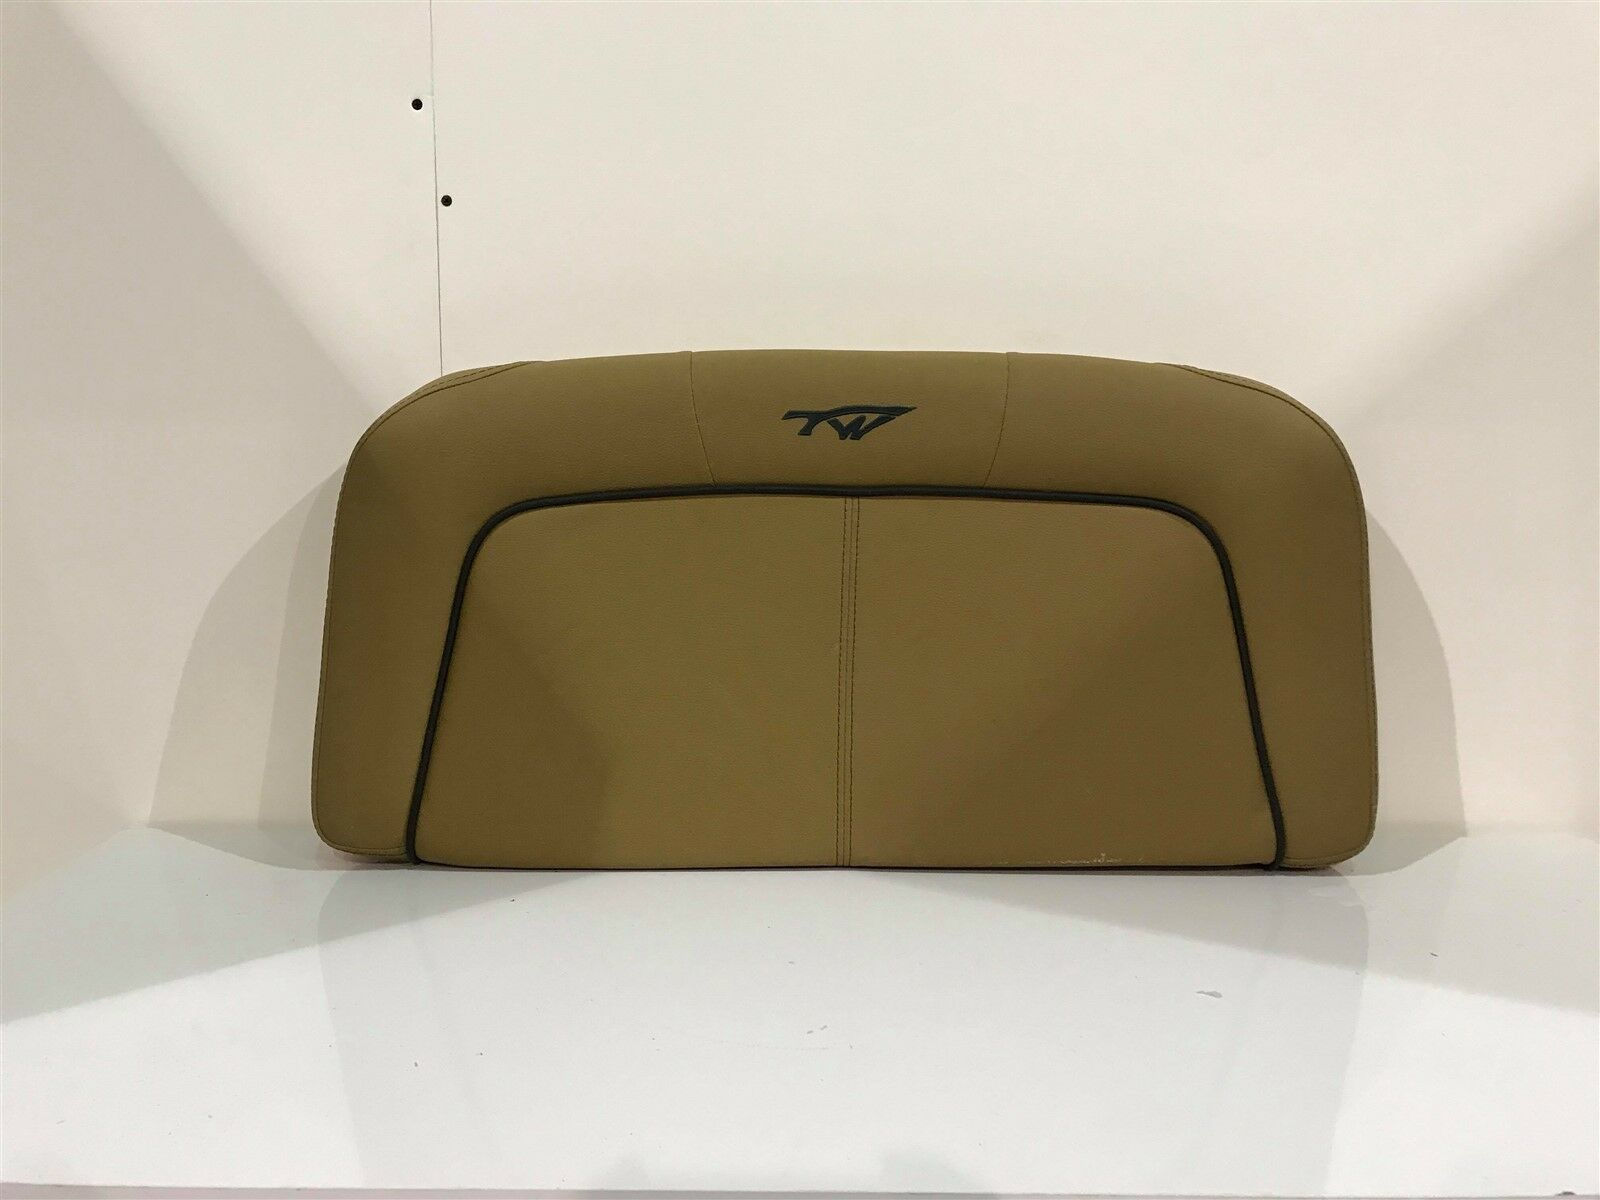 Tidewater 2500CC Dark Tan Console Backrest Cushion TW 25.6 Boat/Marine